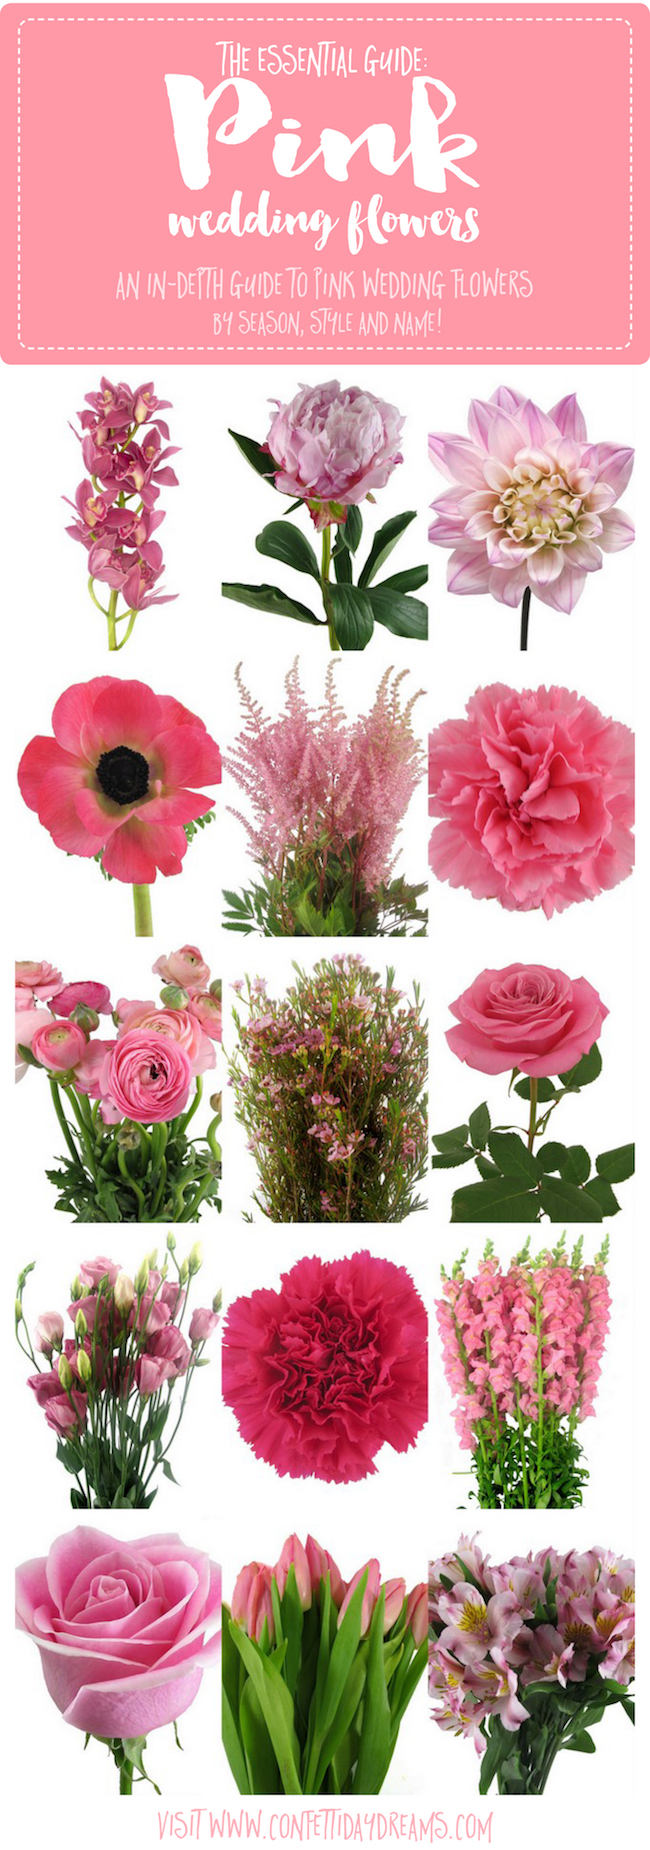 The Essential Pink Wedding Flowers Guide Types Of Pink Flowers Names Seasons Pics